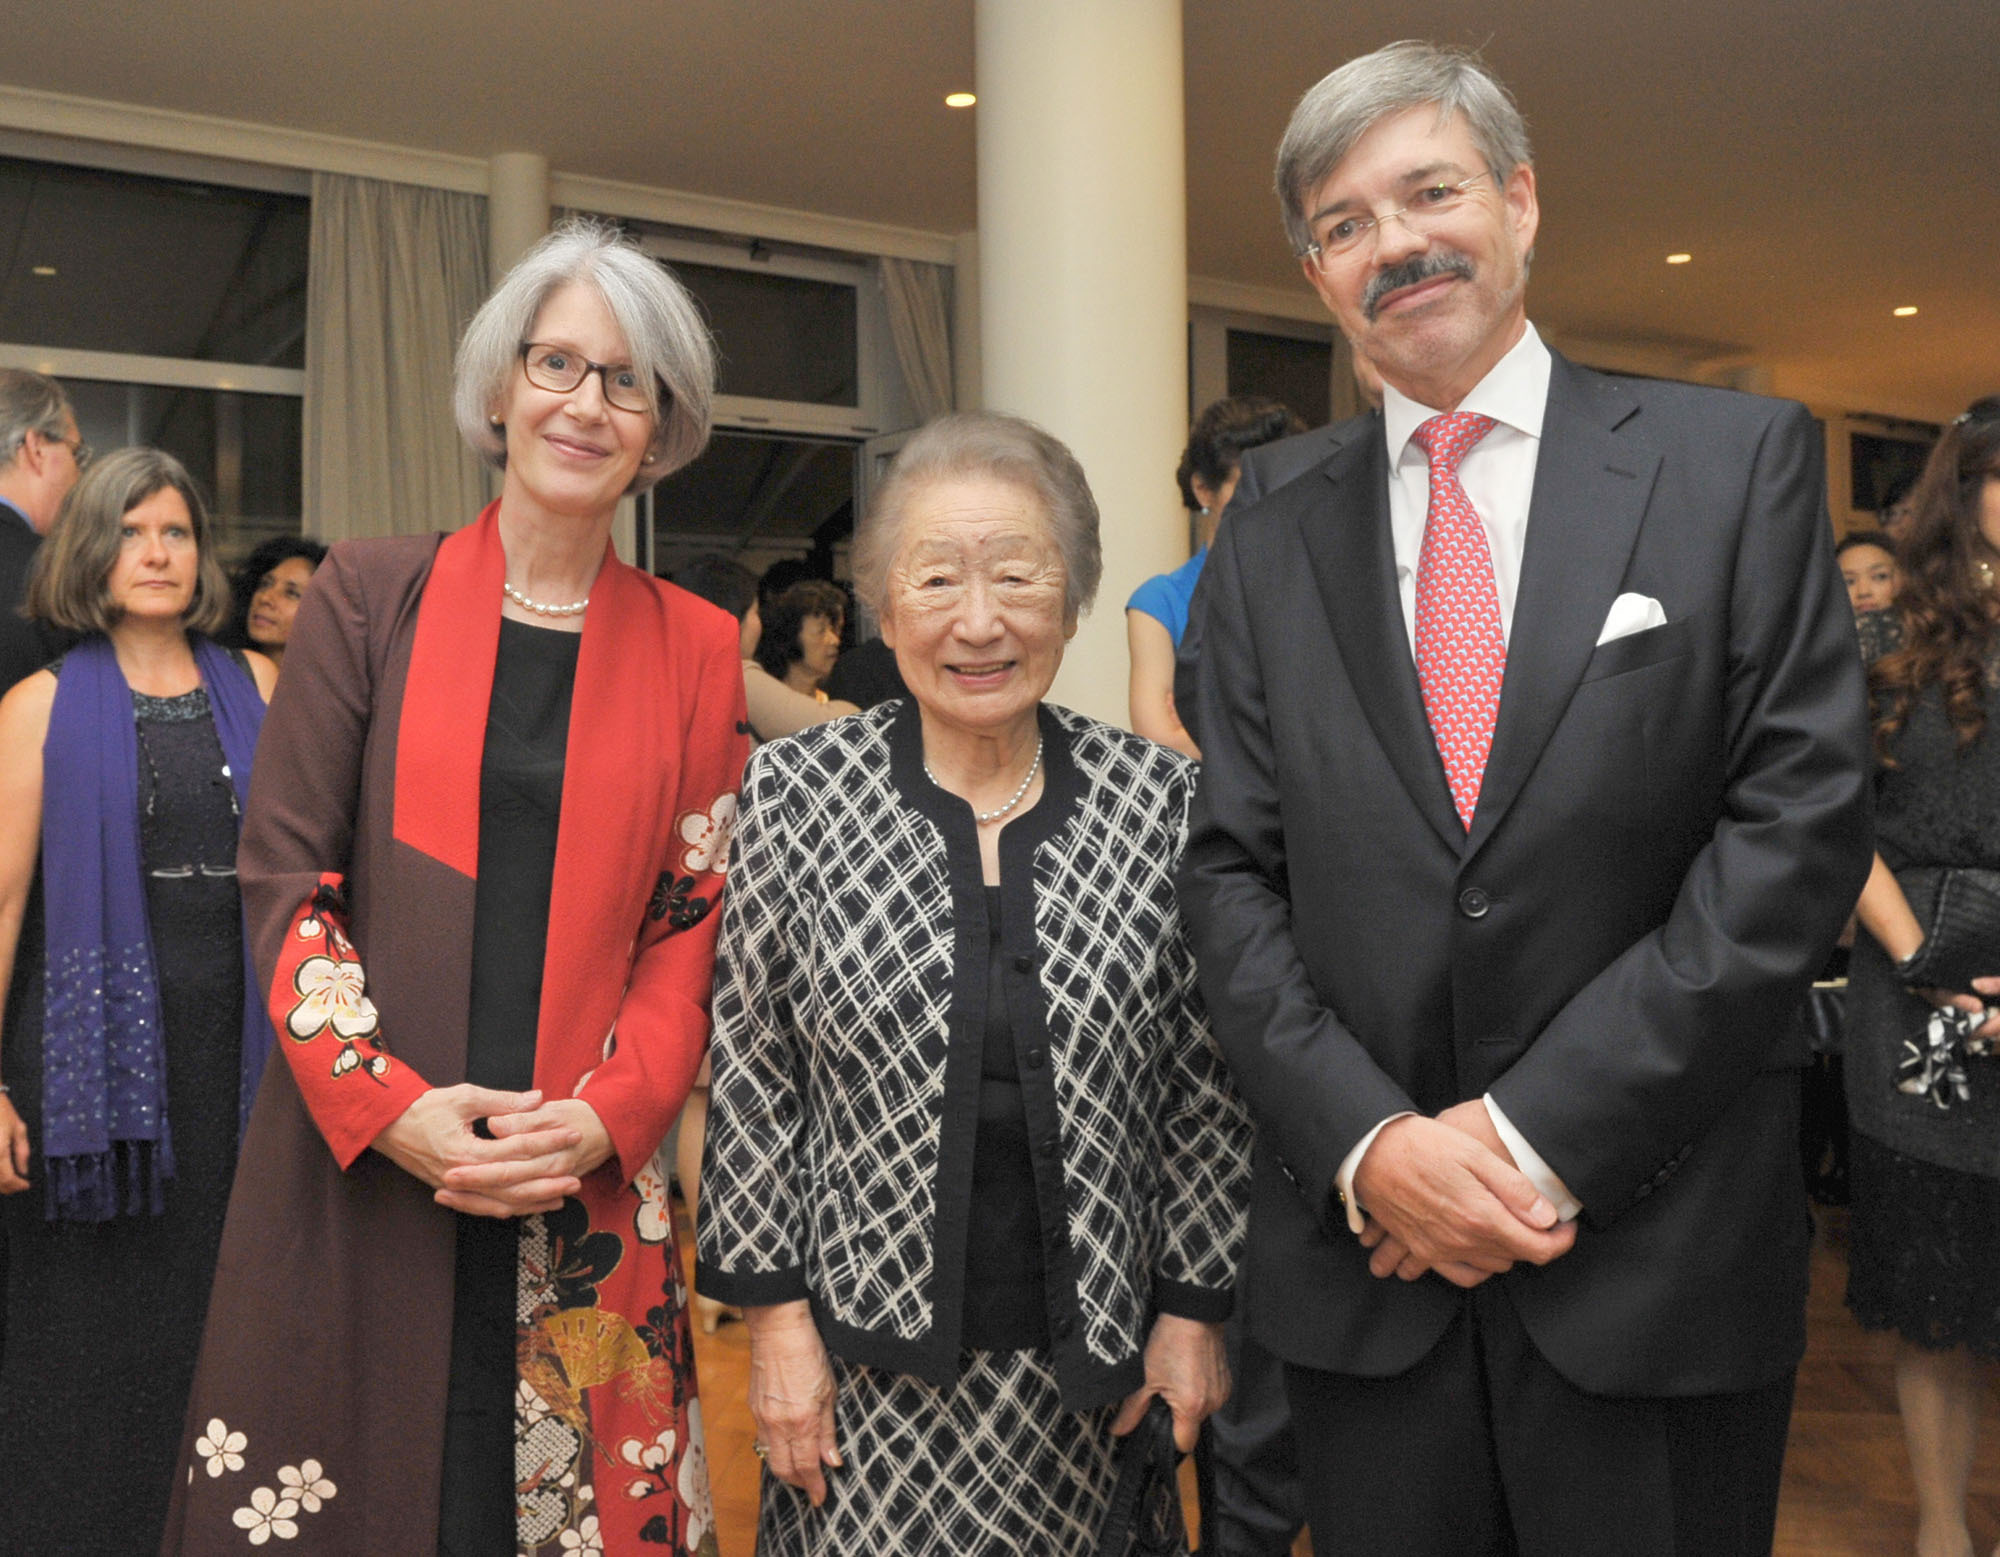 Germany Ambassador Hans Carl von Werthern (right) and his wife, Elizabeth (left) welcome Sadako Ogata, former United Nations High Commissioner for Refugees (UNHCR), and  former president of the Japan International Cooperation Agency (JICA), during a reception to celebrate the Day of German Unity at their residence in Tokyo on Oct. 3, 2016. | YOSHIAKI MIURA